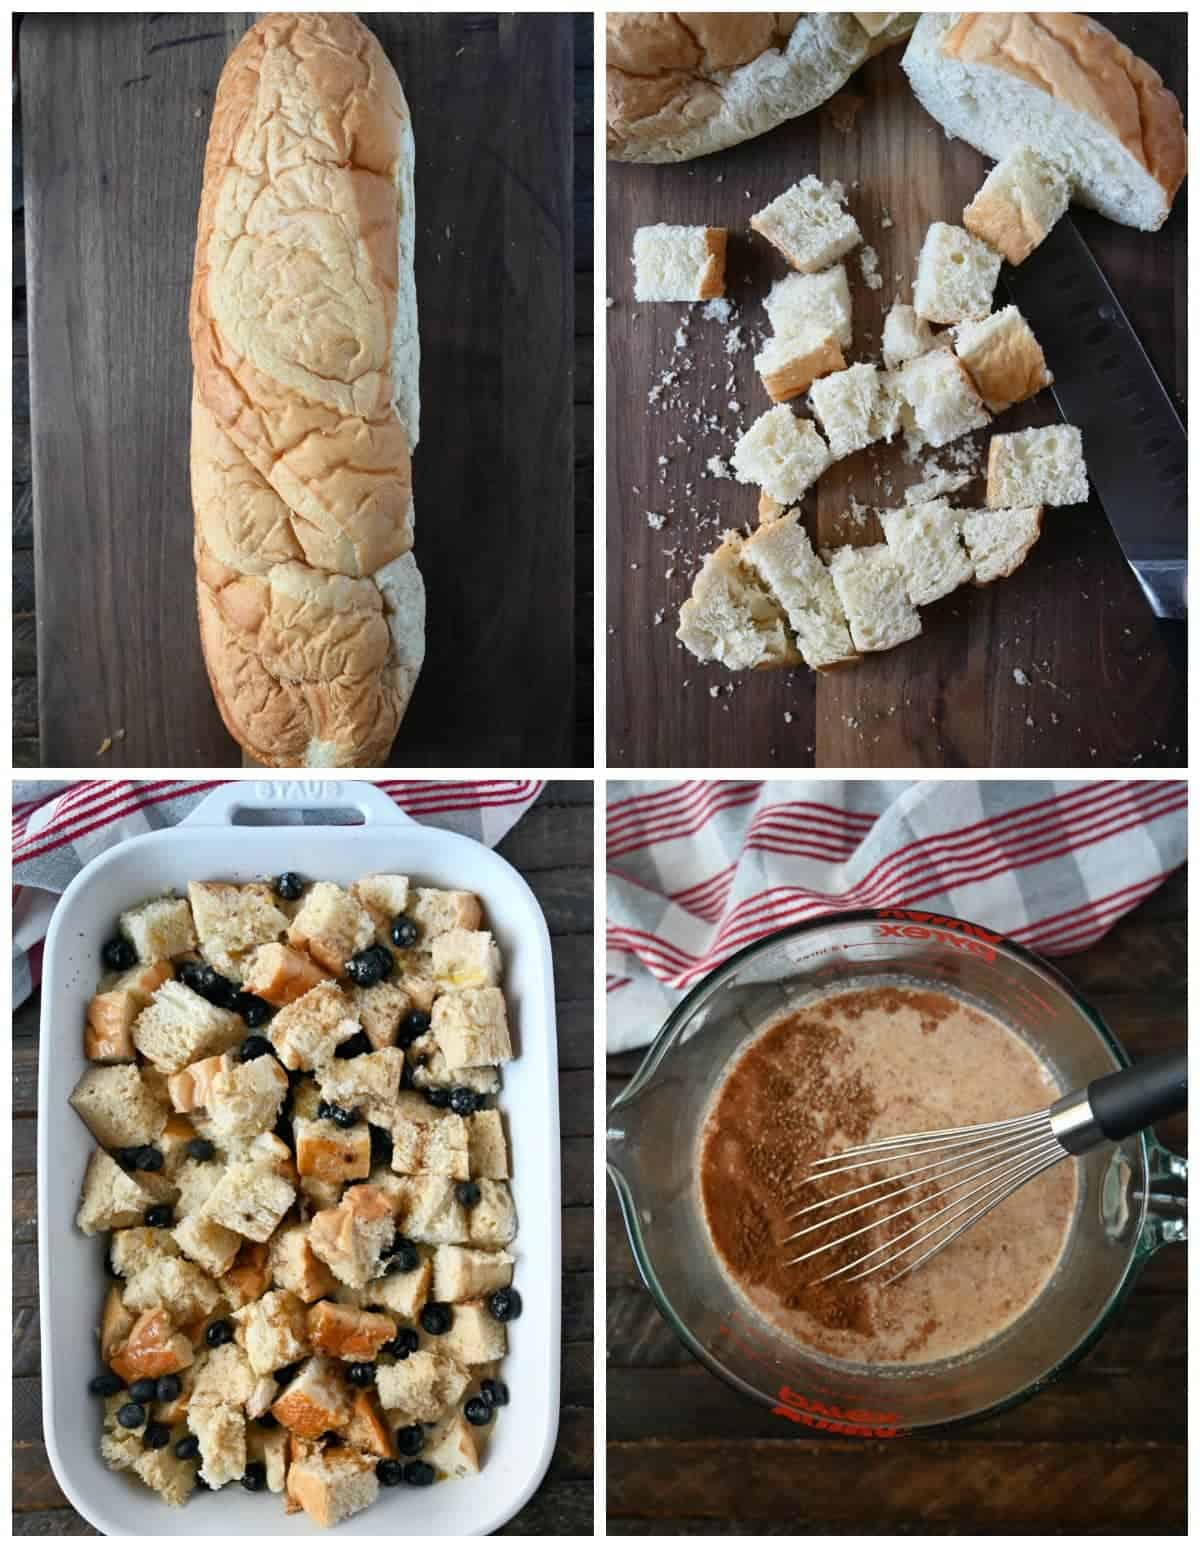 Four process photos. First one, a loaf of french bread on a cutting board. Second one, french bread cut into cubes. Third one, cubed french bread with fresh blueberries mixed in. Fourth one, wet ingredients all mixed into a large pyrex mixing bowl.